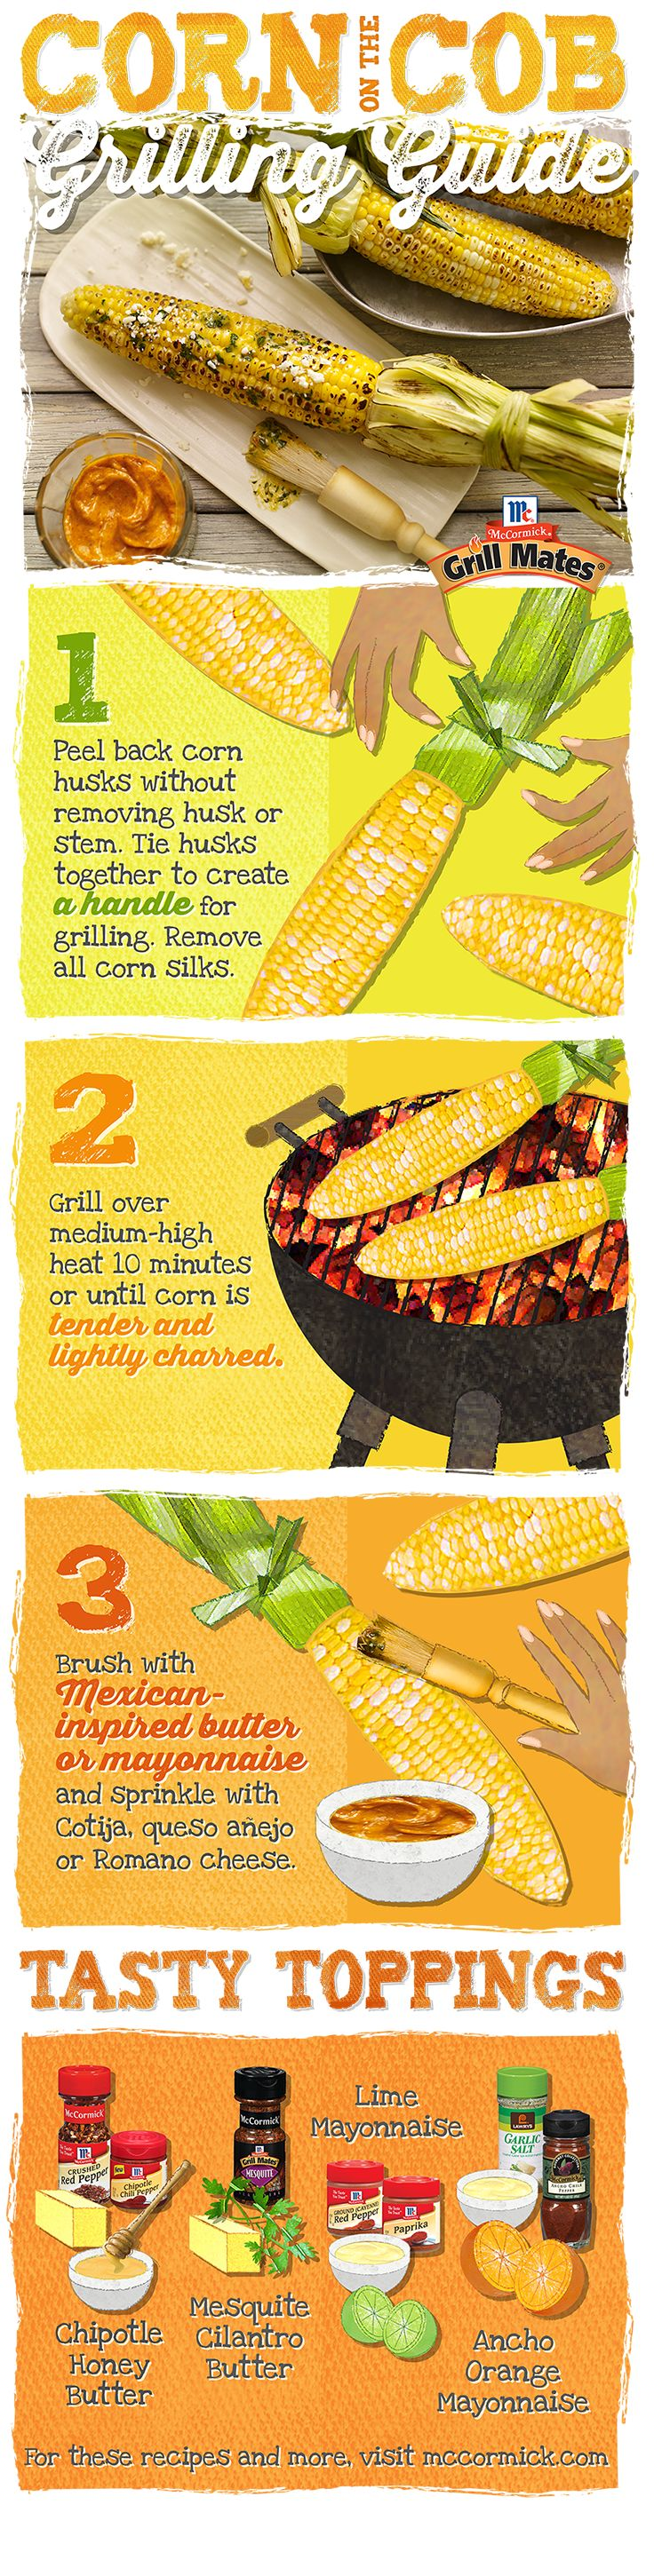 Use this handy how-to guide to make grilled corn the star side of your next BBQ.